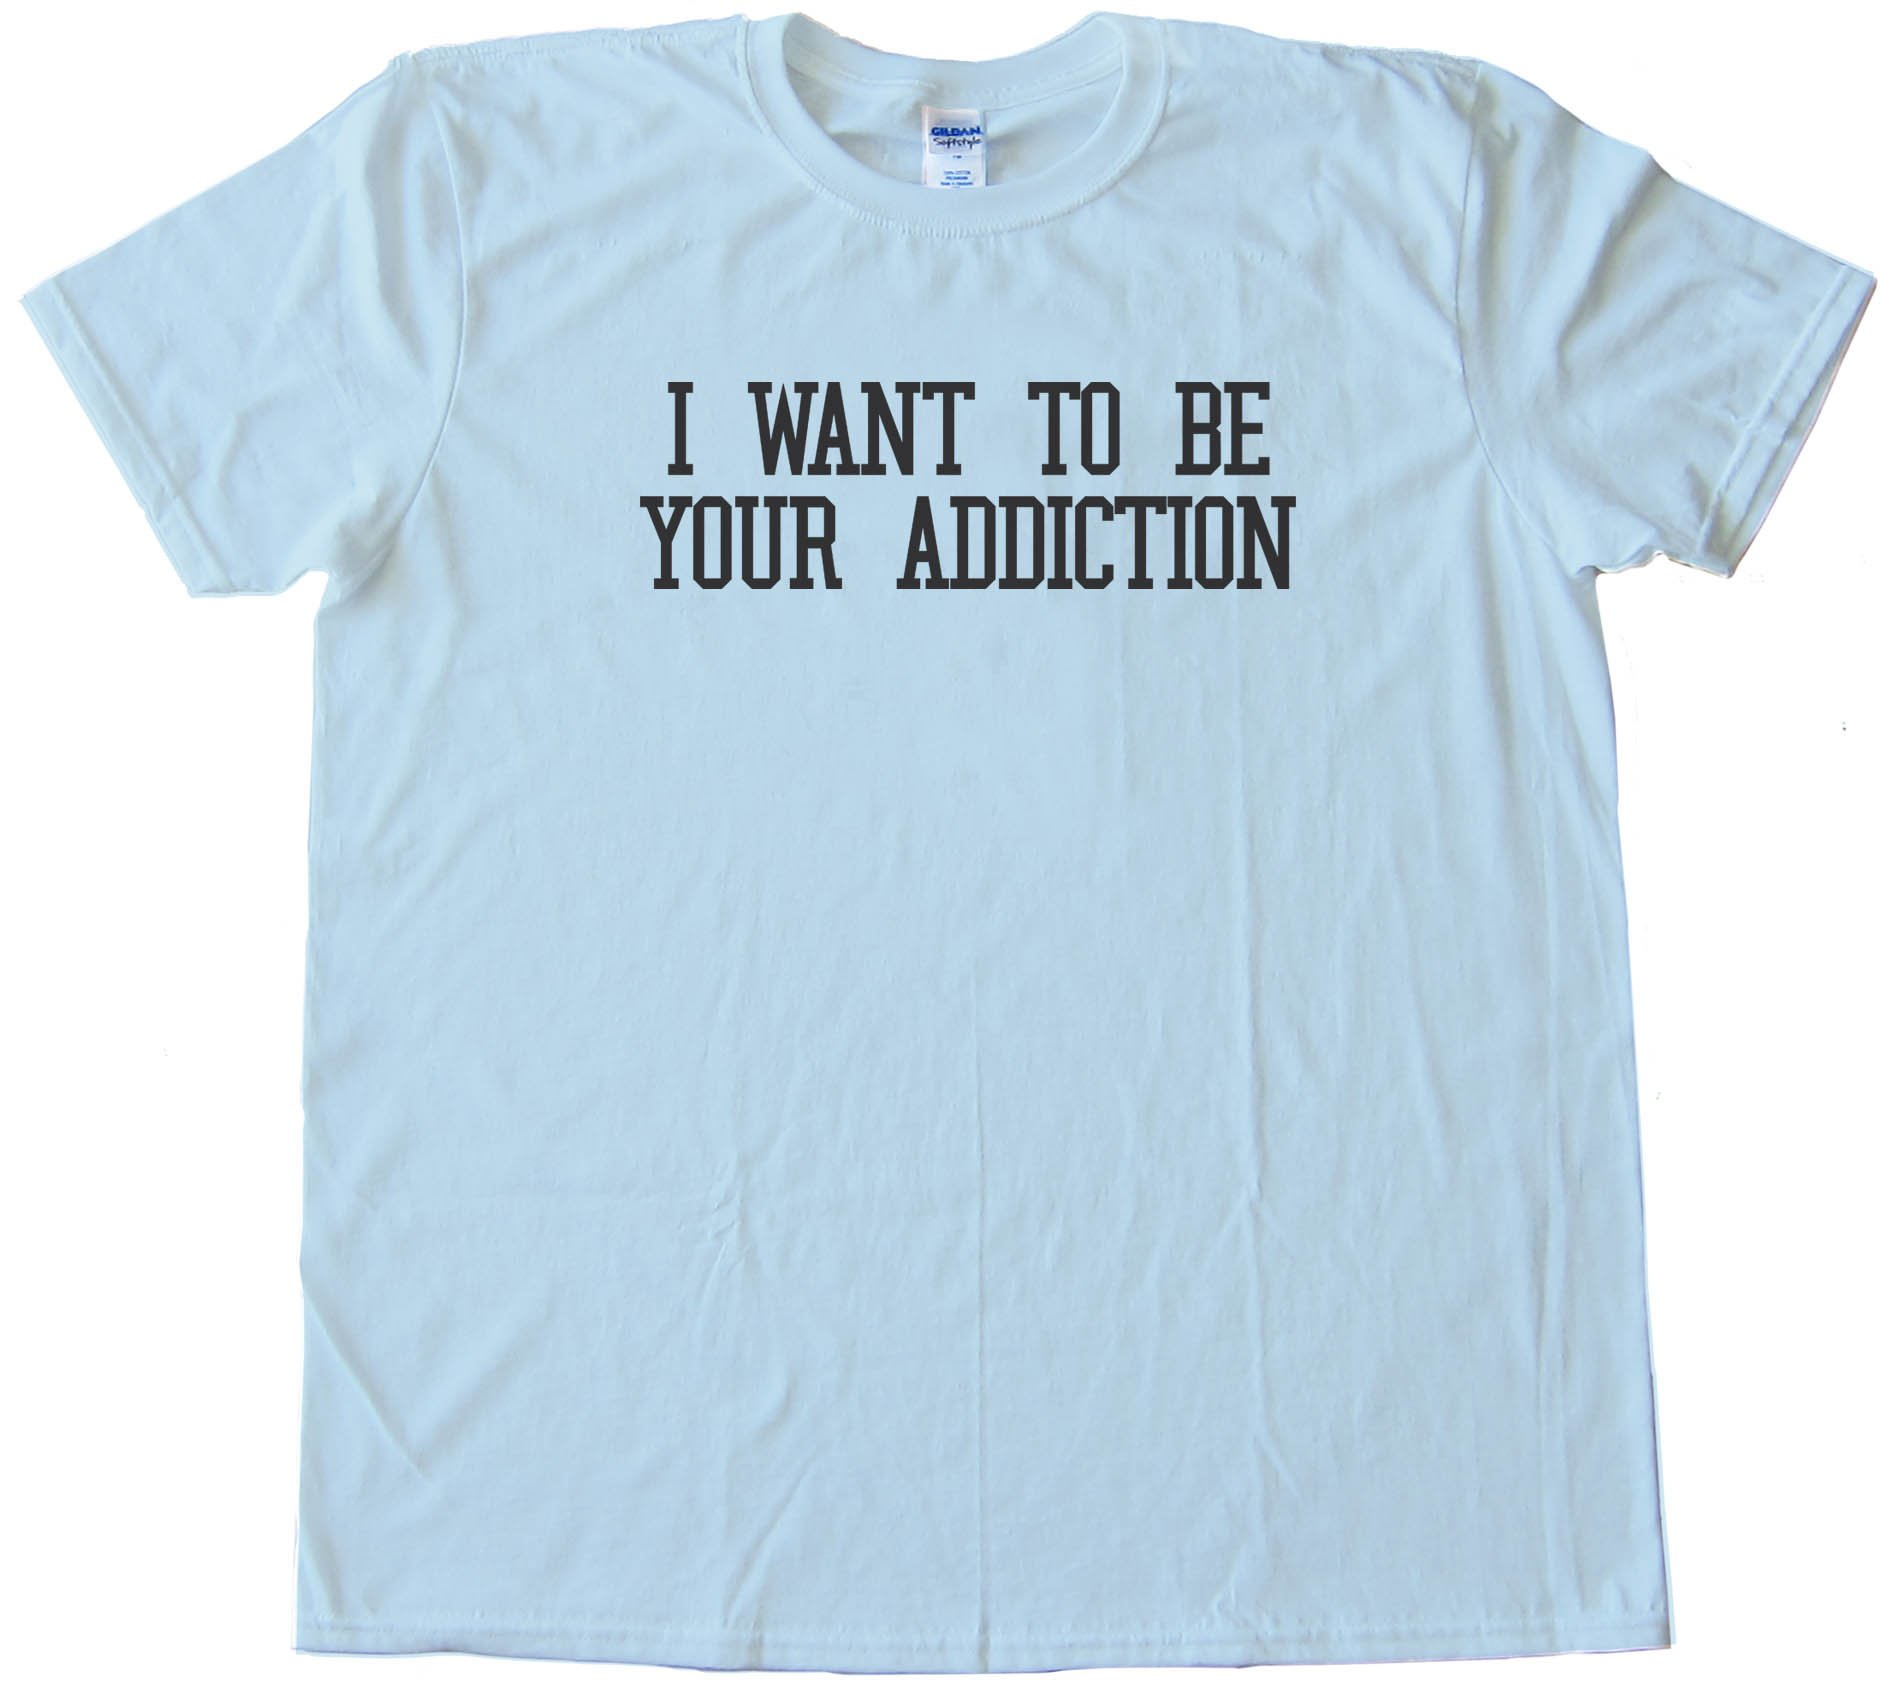 I Want To Be Your Addiction - Tee Shirt